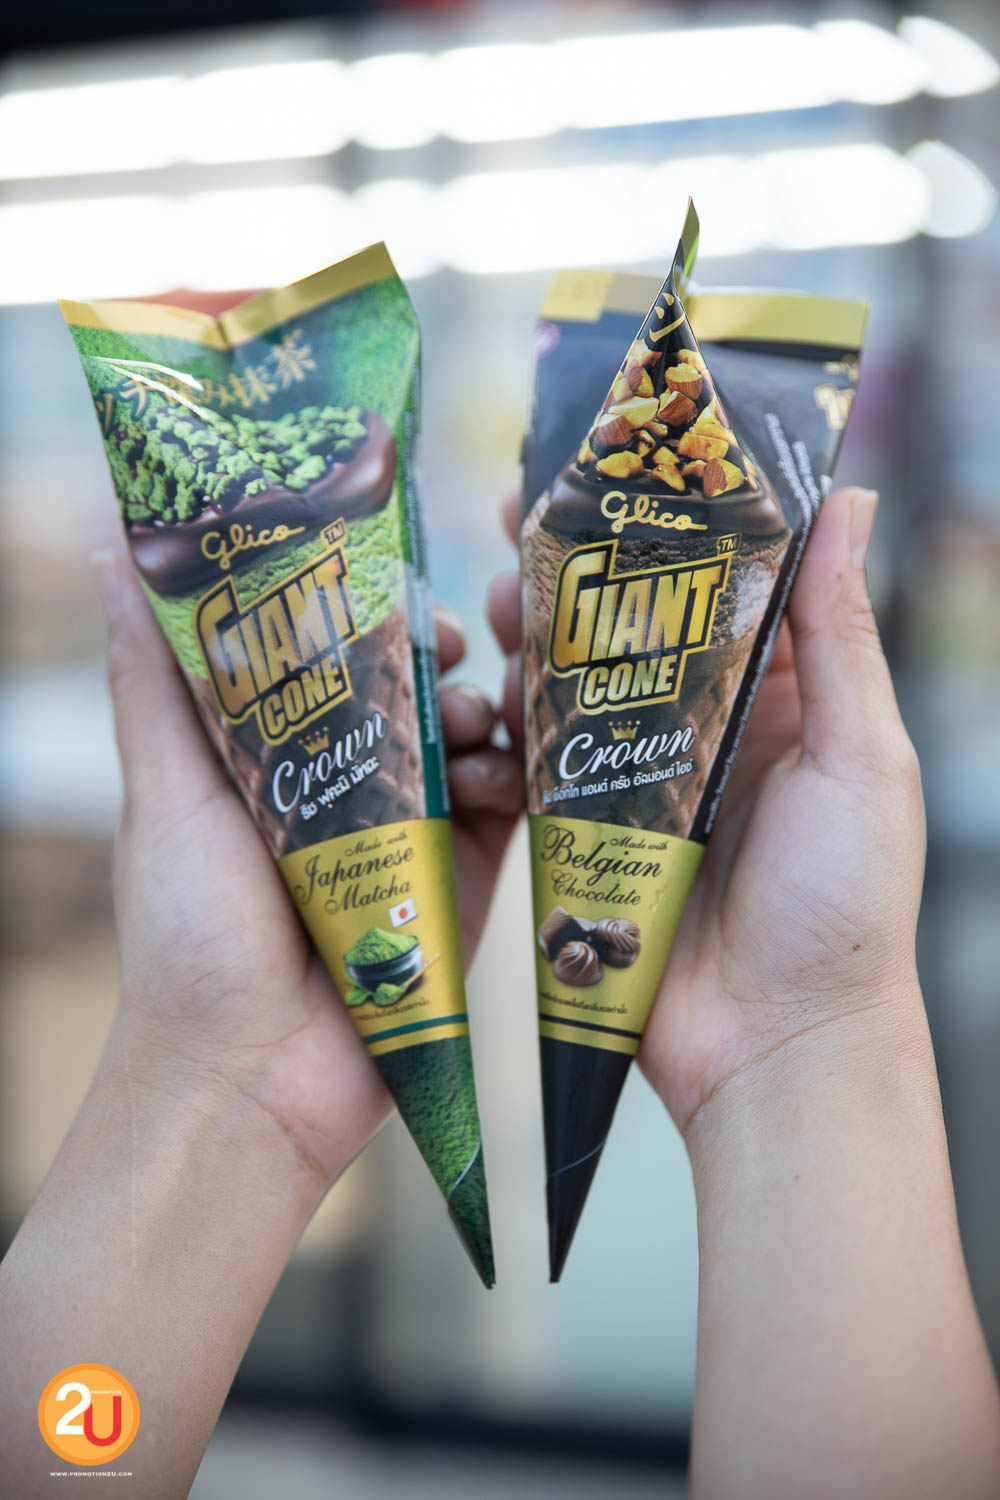 Promotion Gulico Giant Clone Crown Special Discount 30 Baht at 7 11 P04